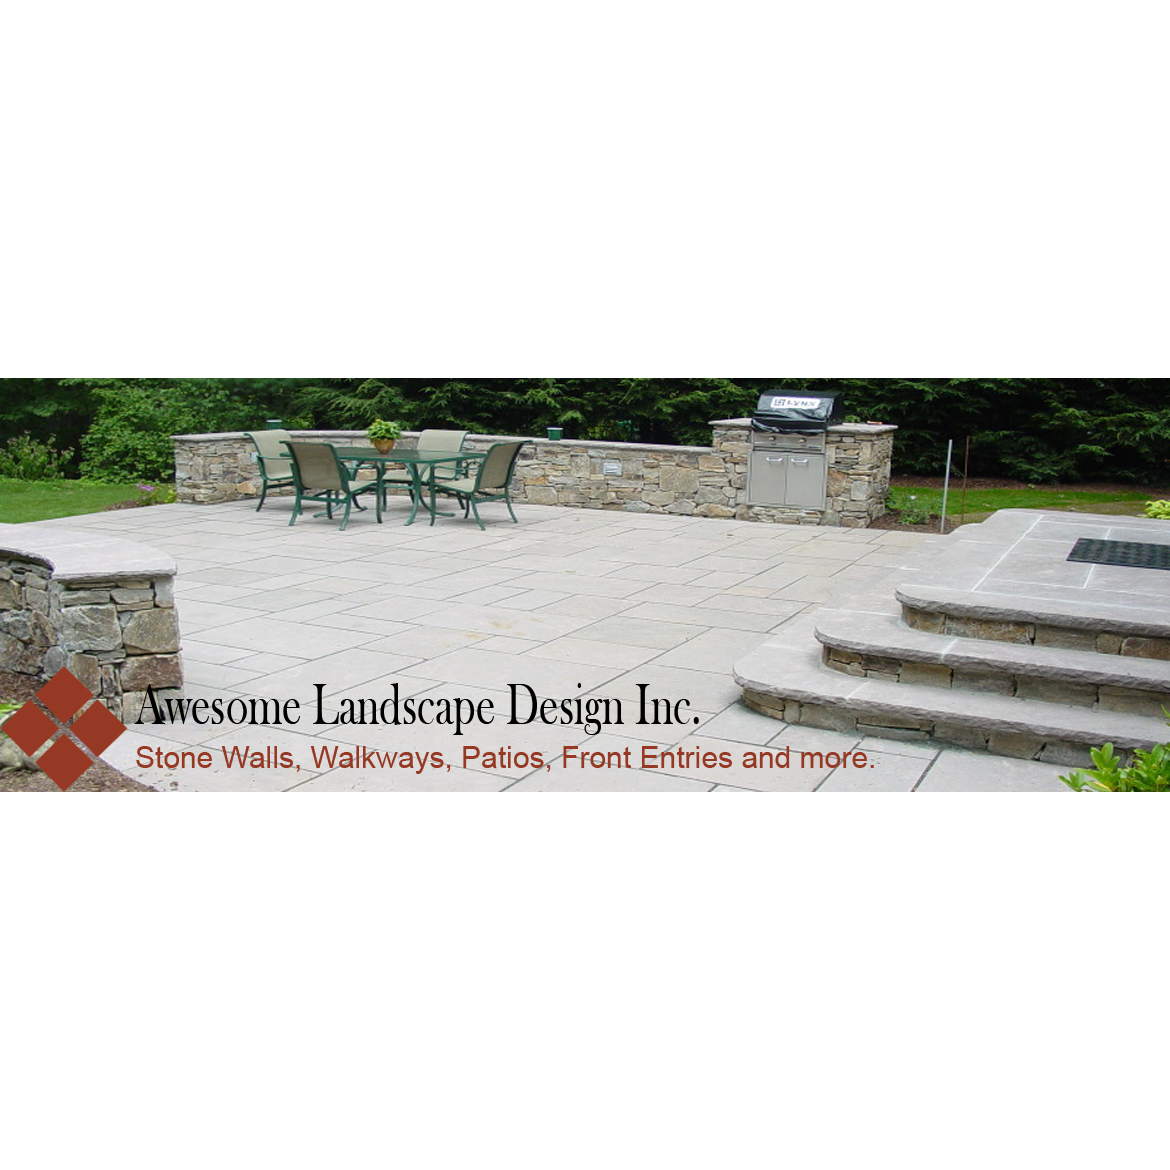 Awesome landscape design inc in westborough ma 01581 for Landscape design inc